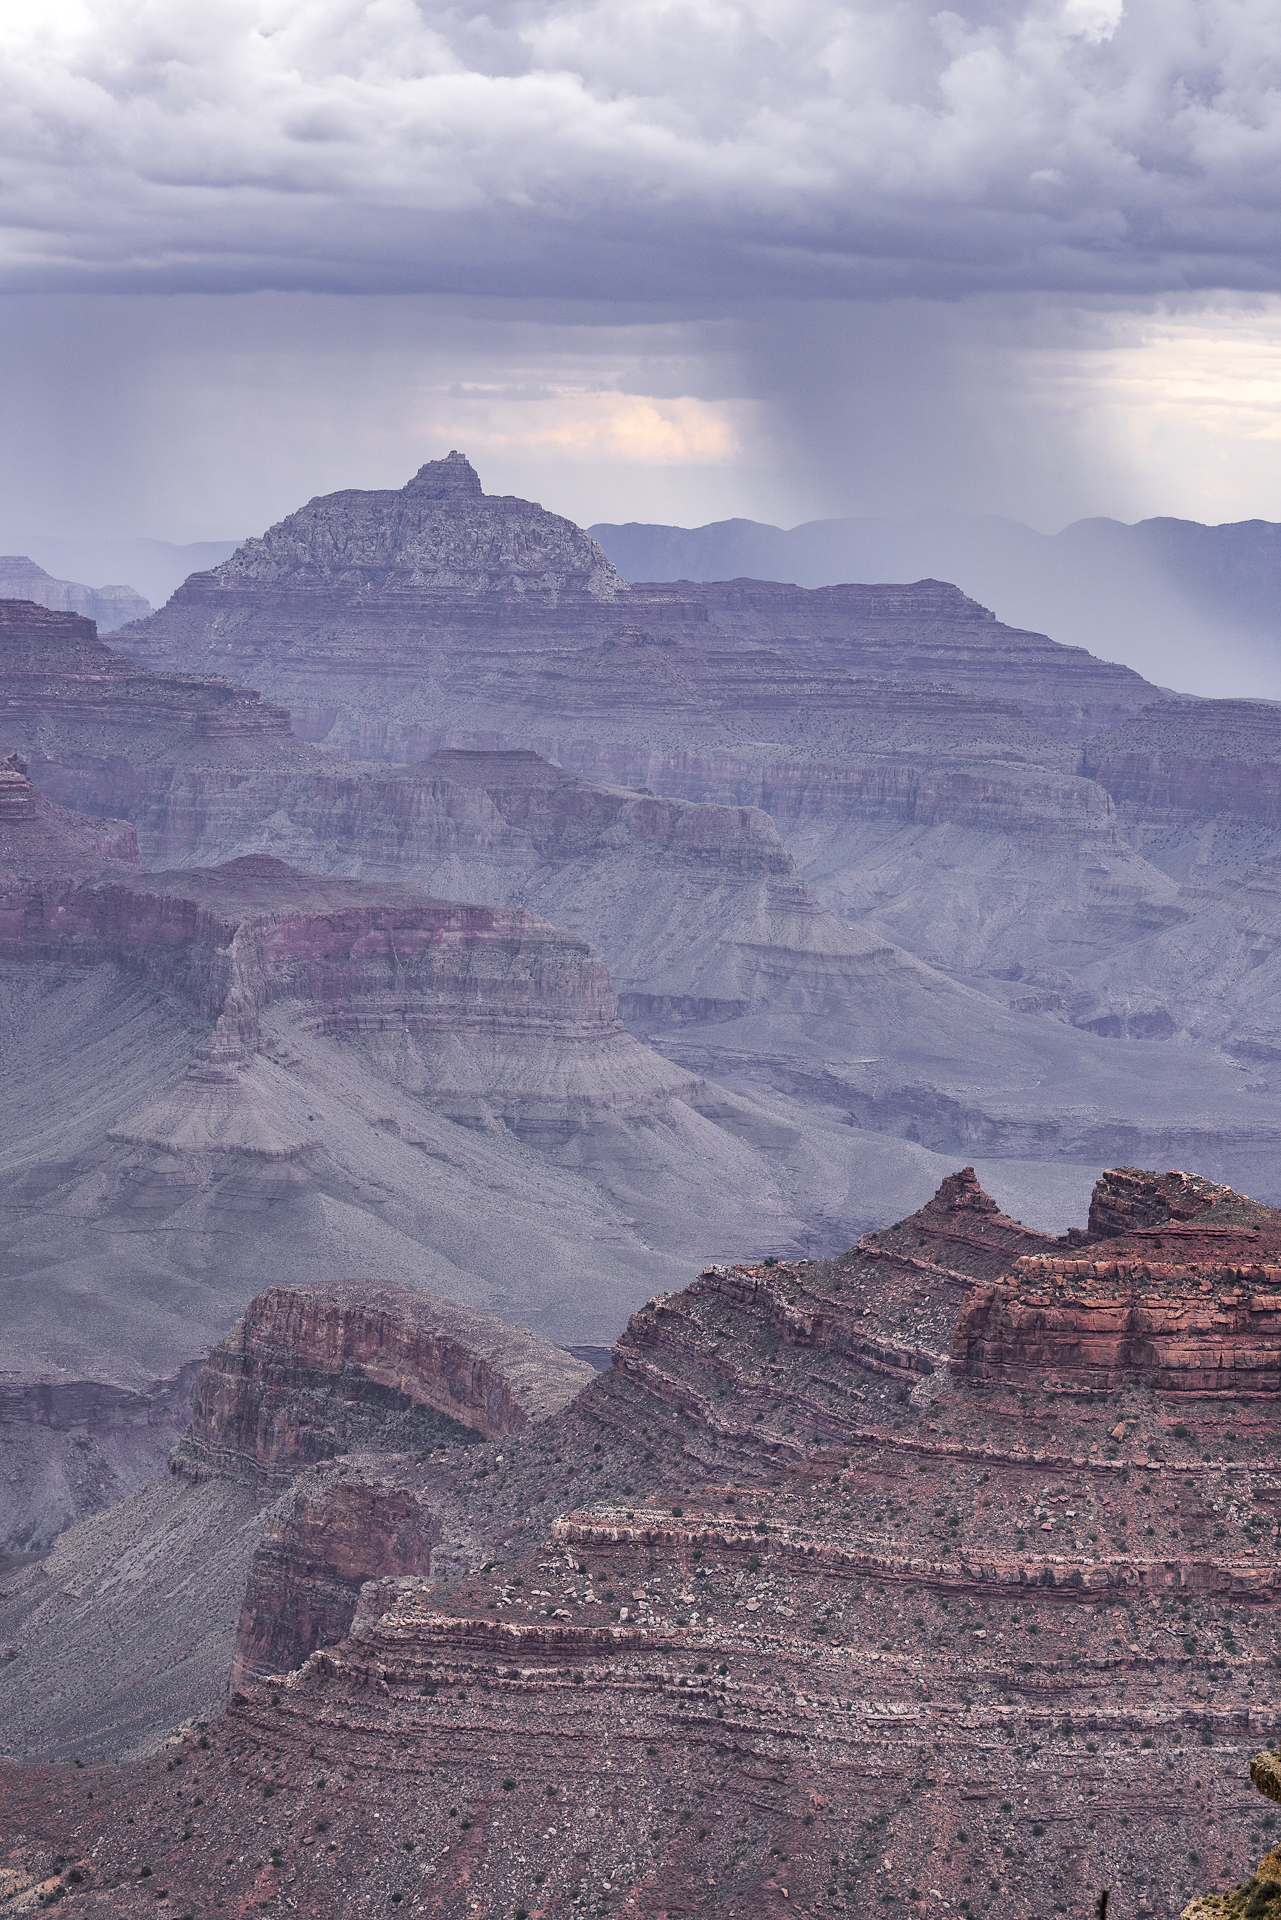 Heavy rain shower over the Grand Canyon, AZ, from Yaki Point